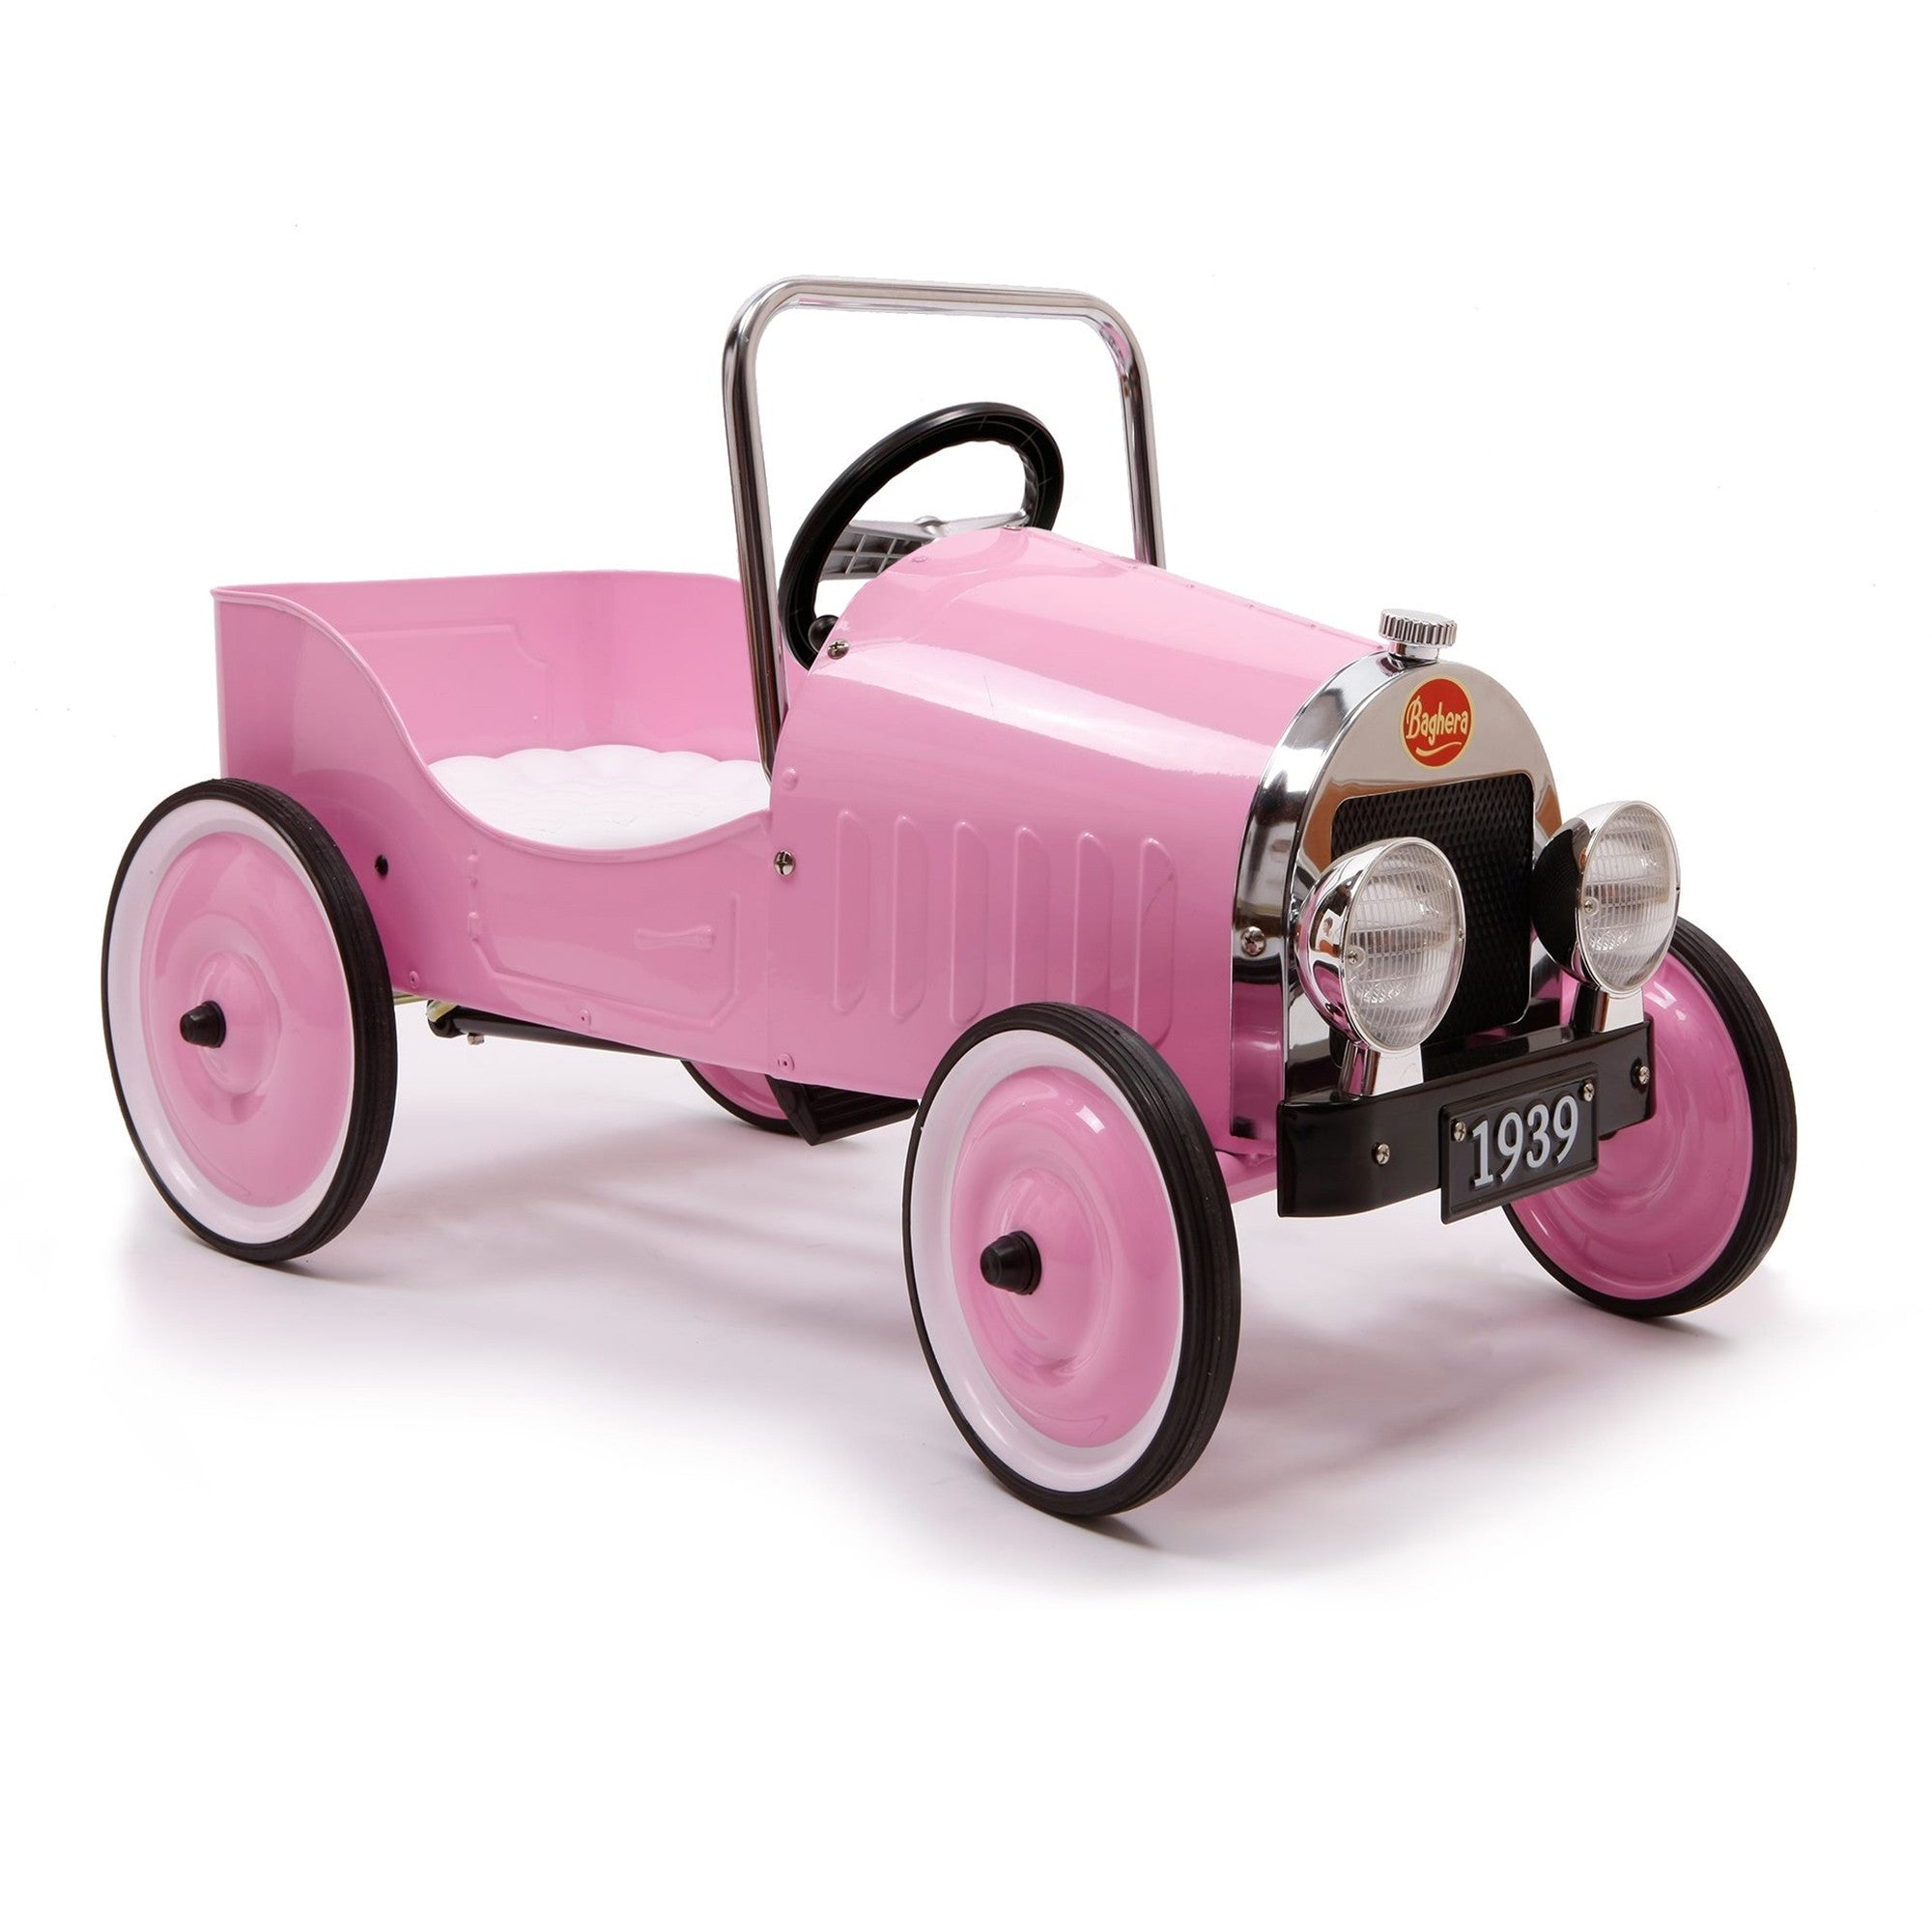 Classic Baghera Pedal Car Baghera Kids Riding Vehicles at Little Earth Nest Eco Shop